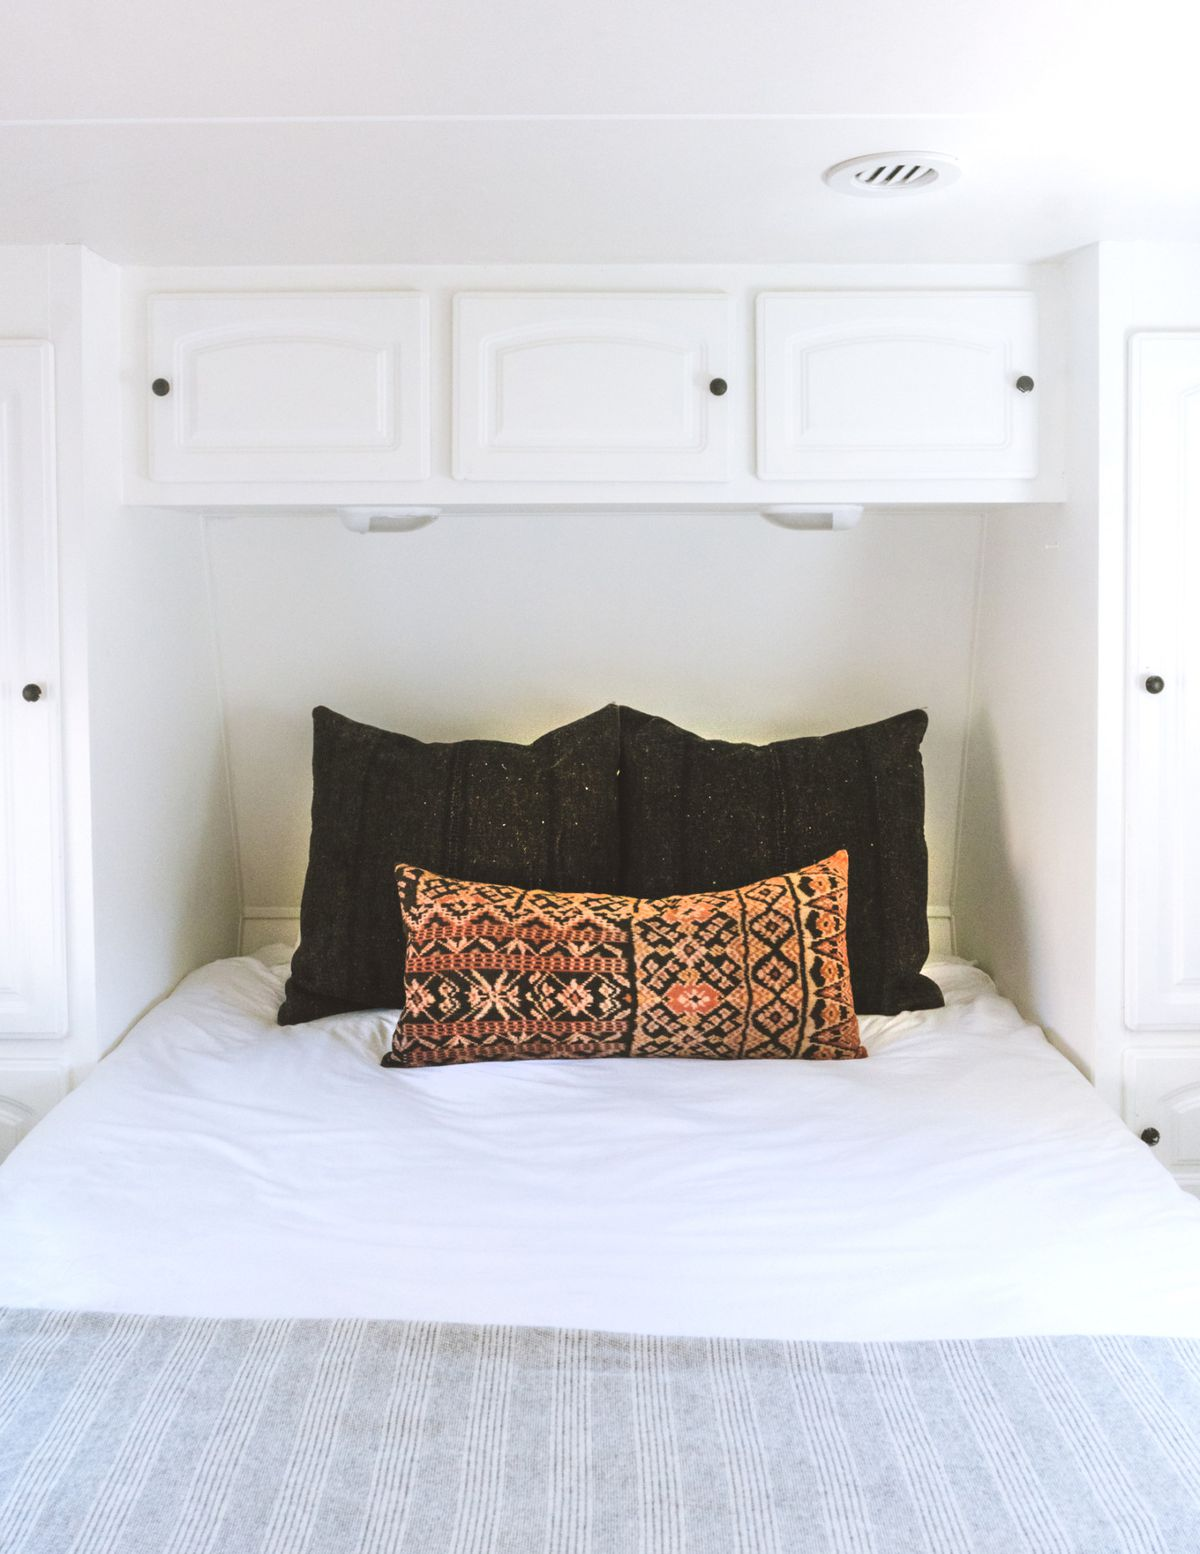 Renovated camper trailer takes designer home goods on a road trip ...